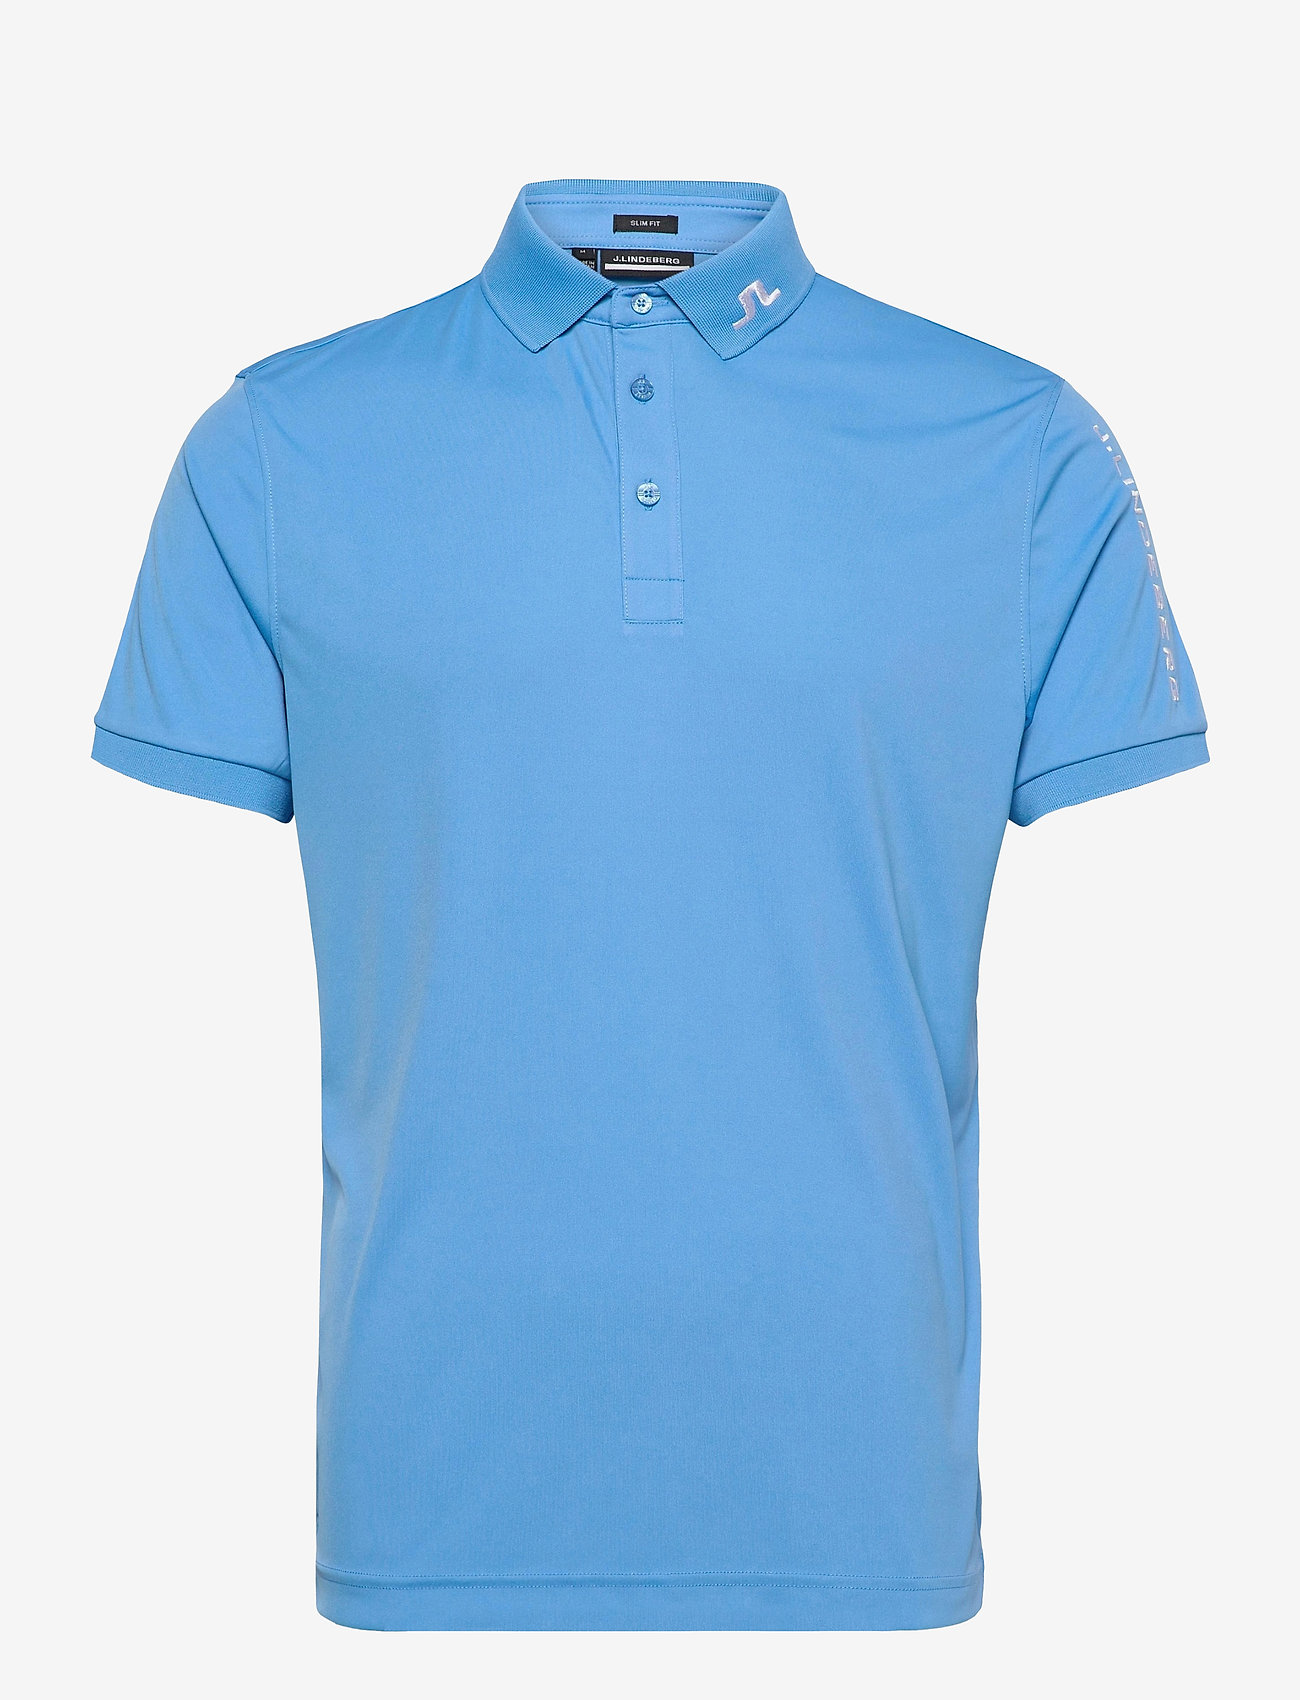 J. Lindeberg Golf - Tour Tech Slim Fit Golf Polo - kurzärmelig - ocean blue - 1